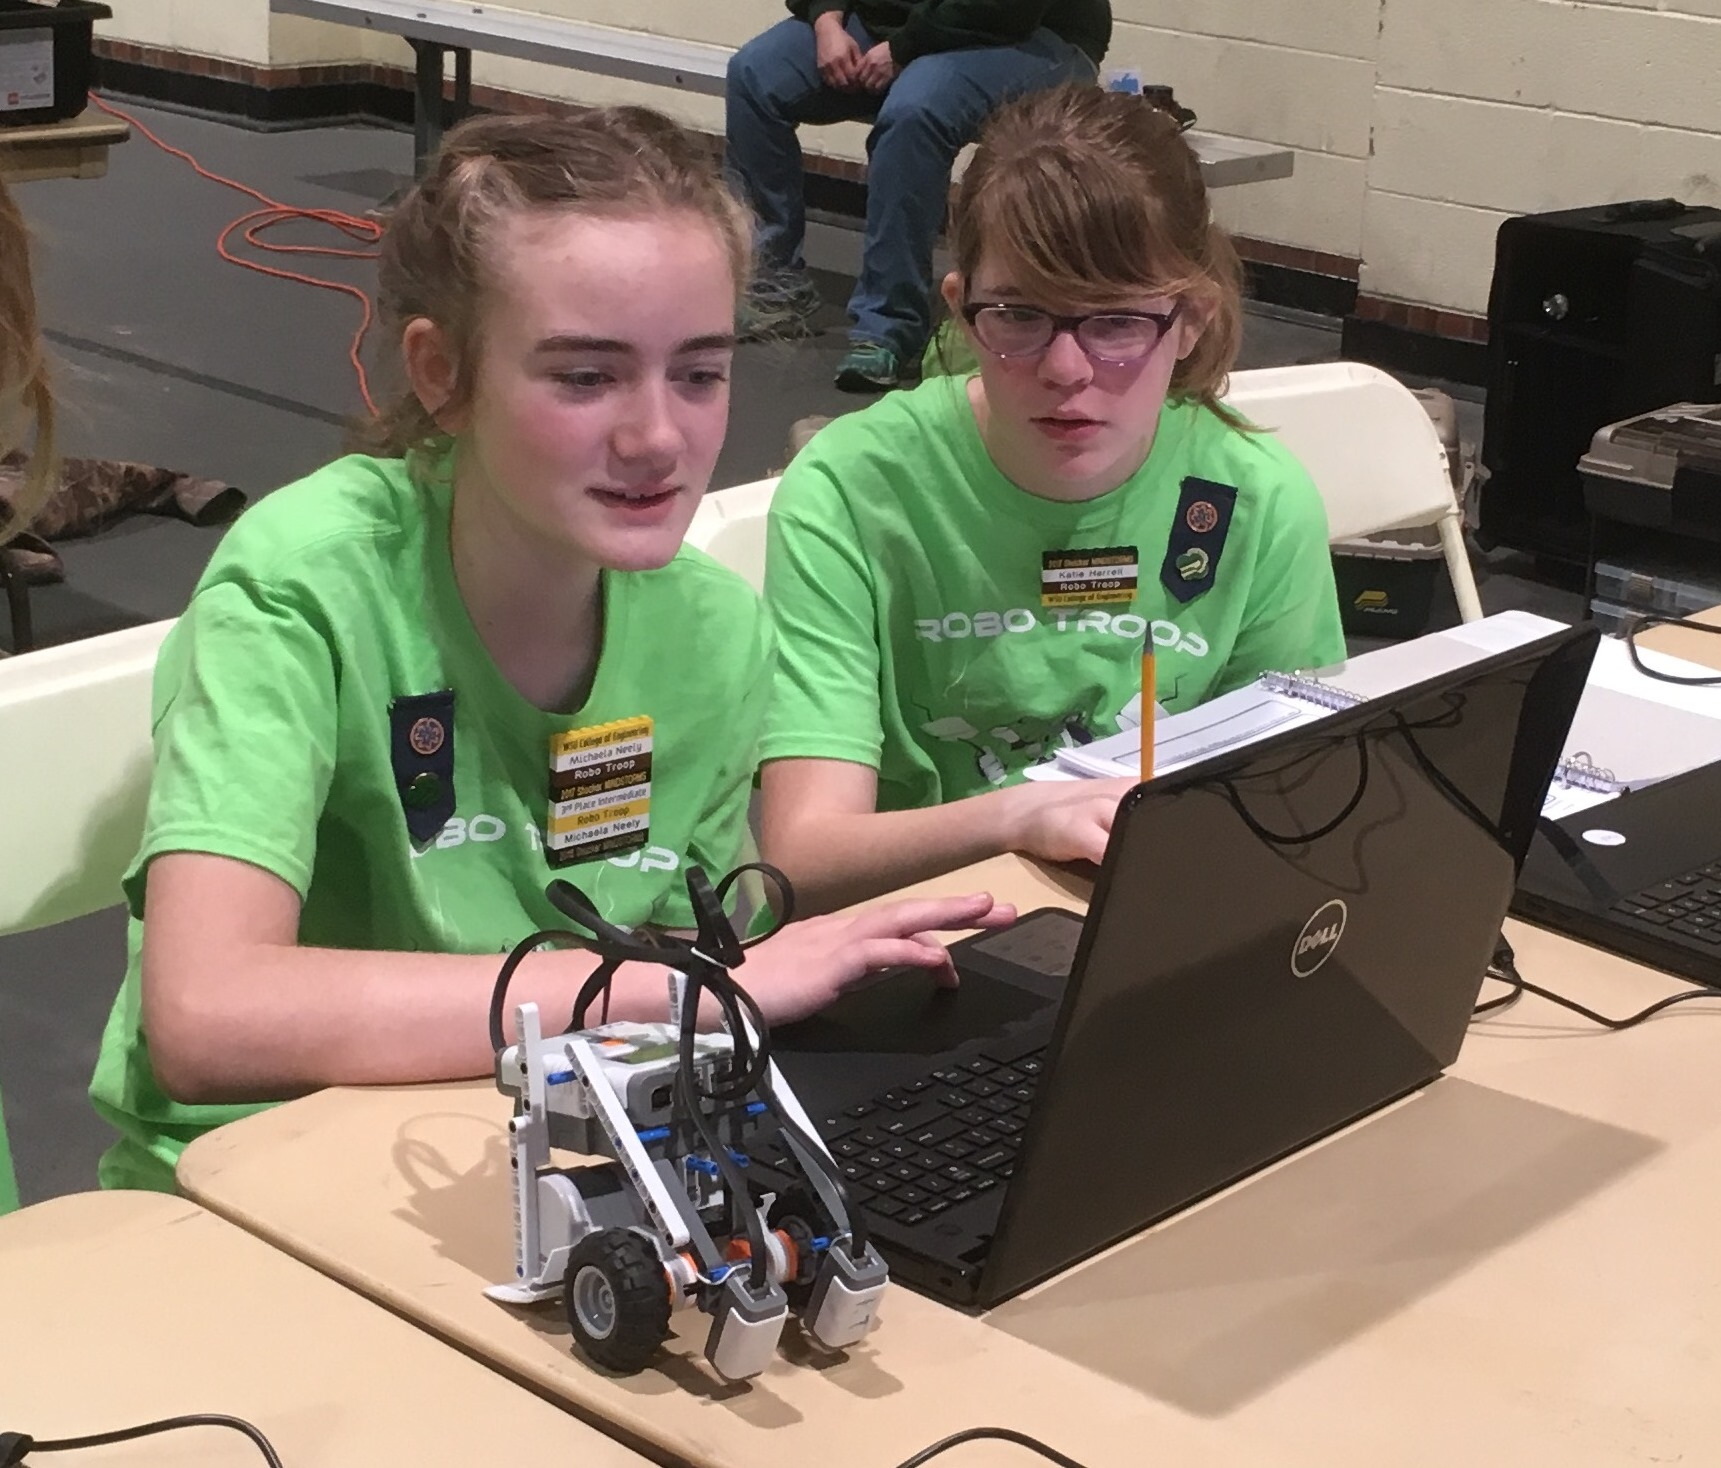 Members of the Girls Scouts of the Kansas Heartland's Robo Troop MINDSTORMS team modify the program on their LEGO robot between competition runs during the 2017 challenge.